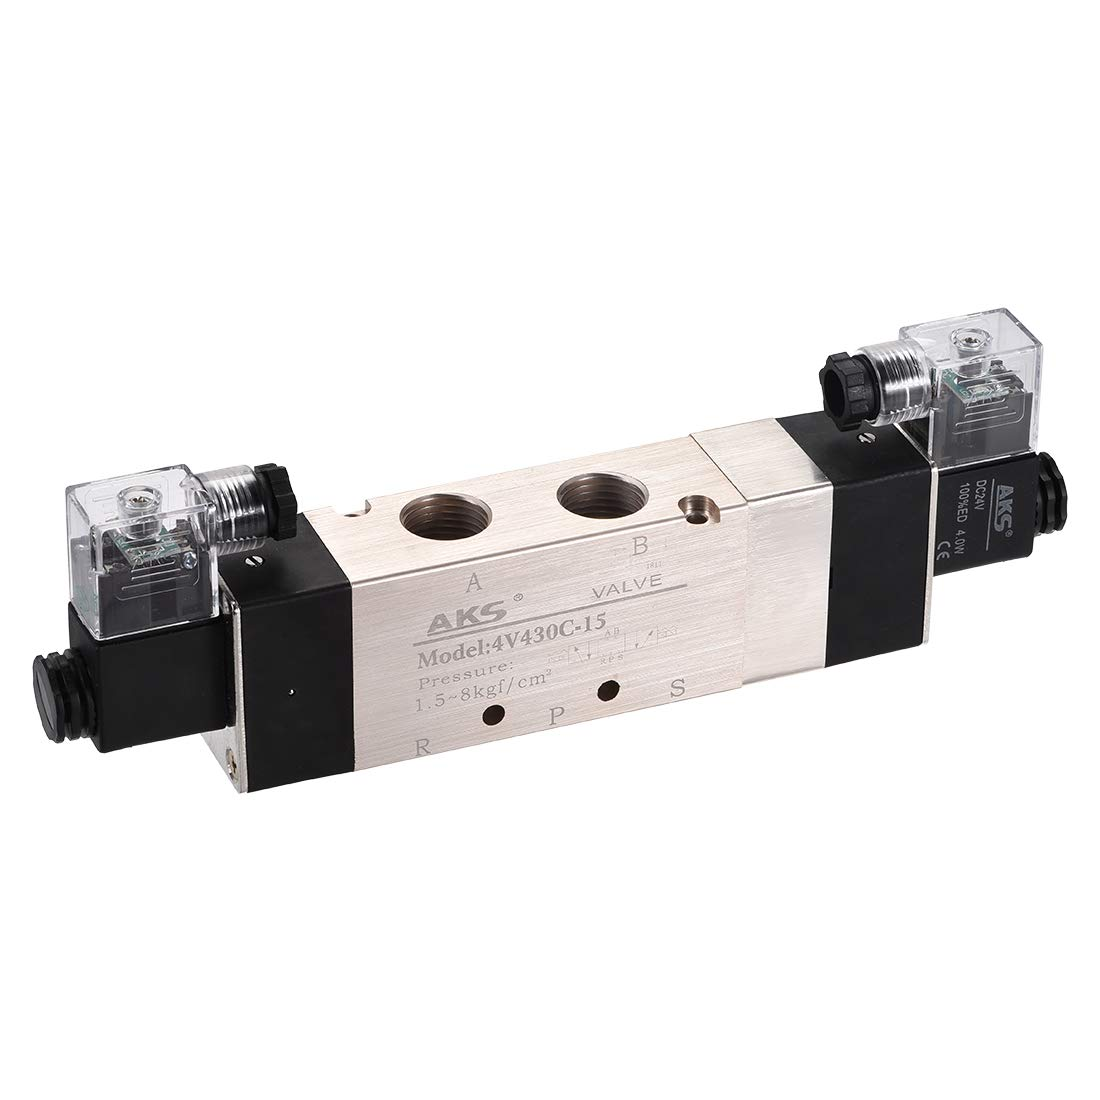 uxcell DC 12V 5 Way 3 Position 1//2 inchesPT Pneumatic Air Solenoid Valve,Double Electrical Control,Internally Piloted Acting Type,Green Light,4V430C-15